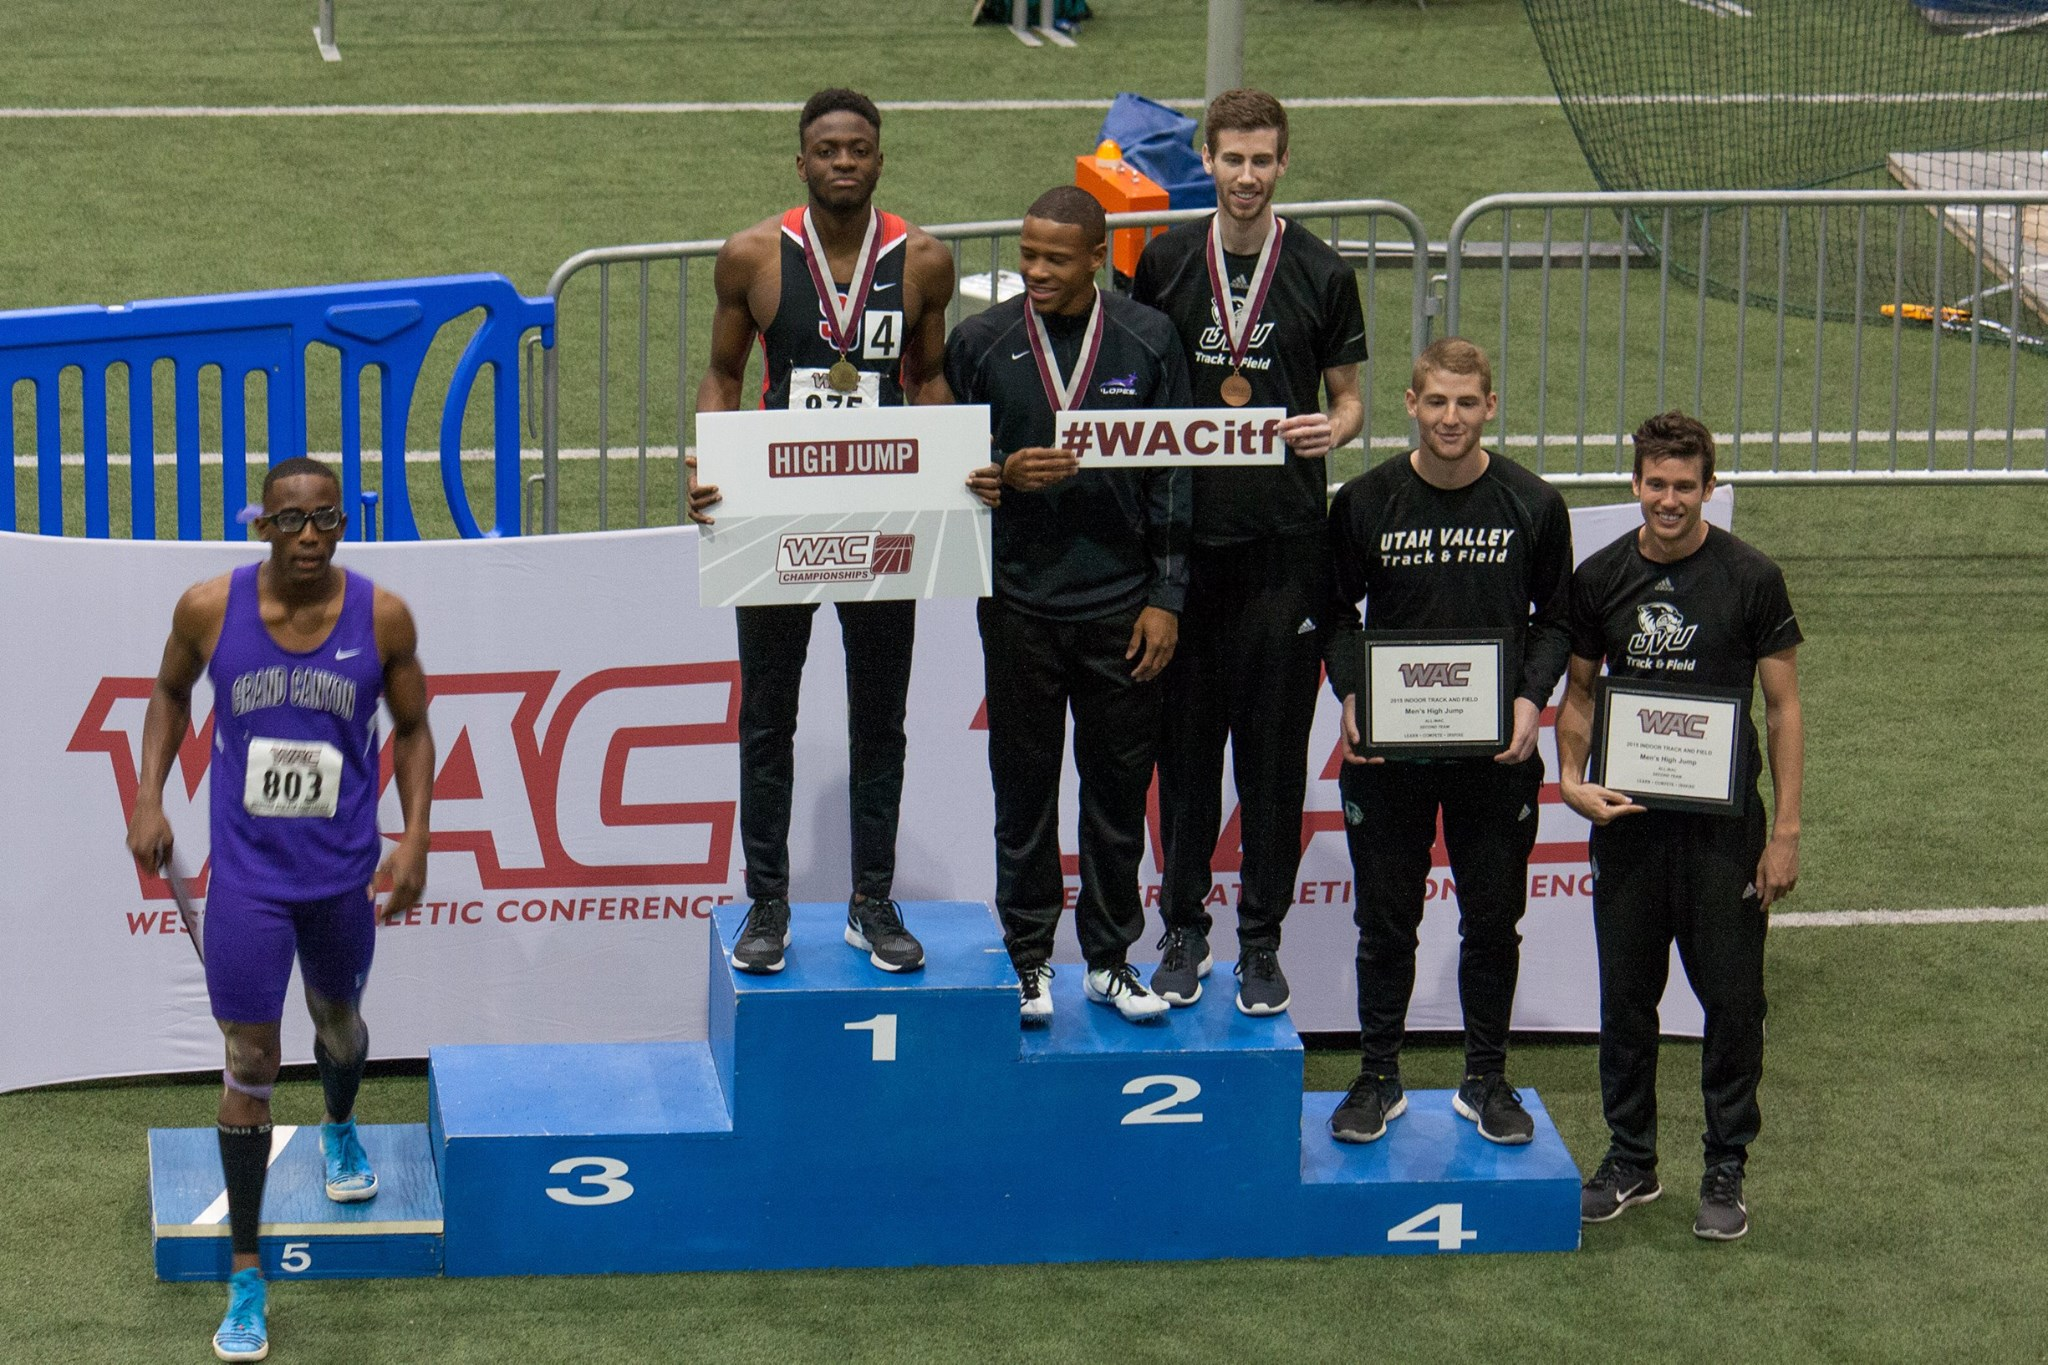 2015 WAC Indoor Track & Field Conference Championships